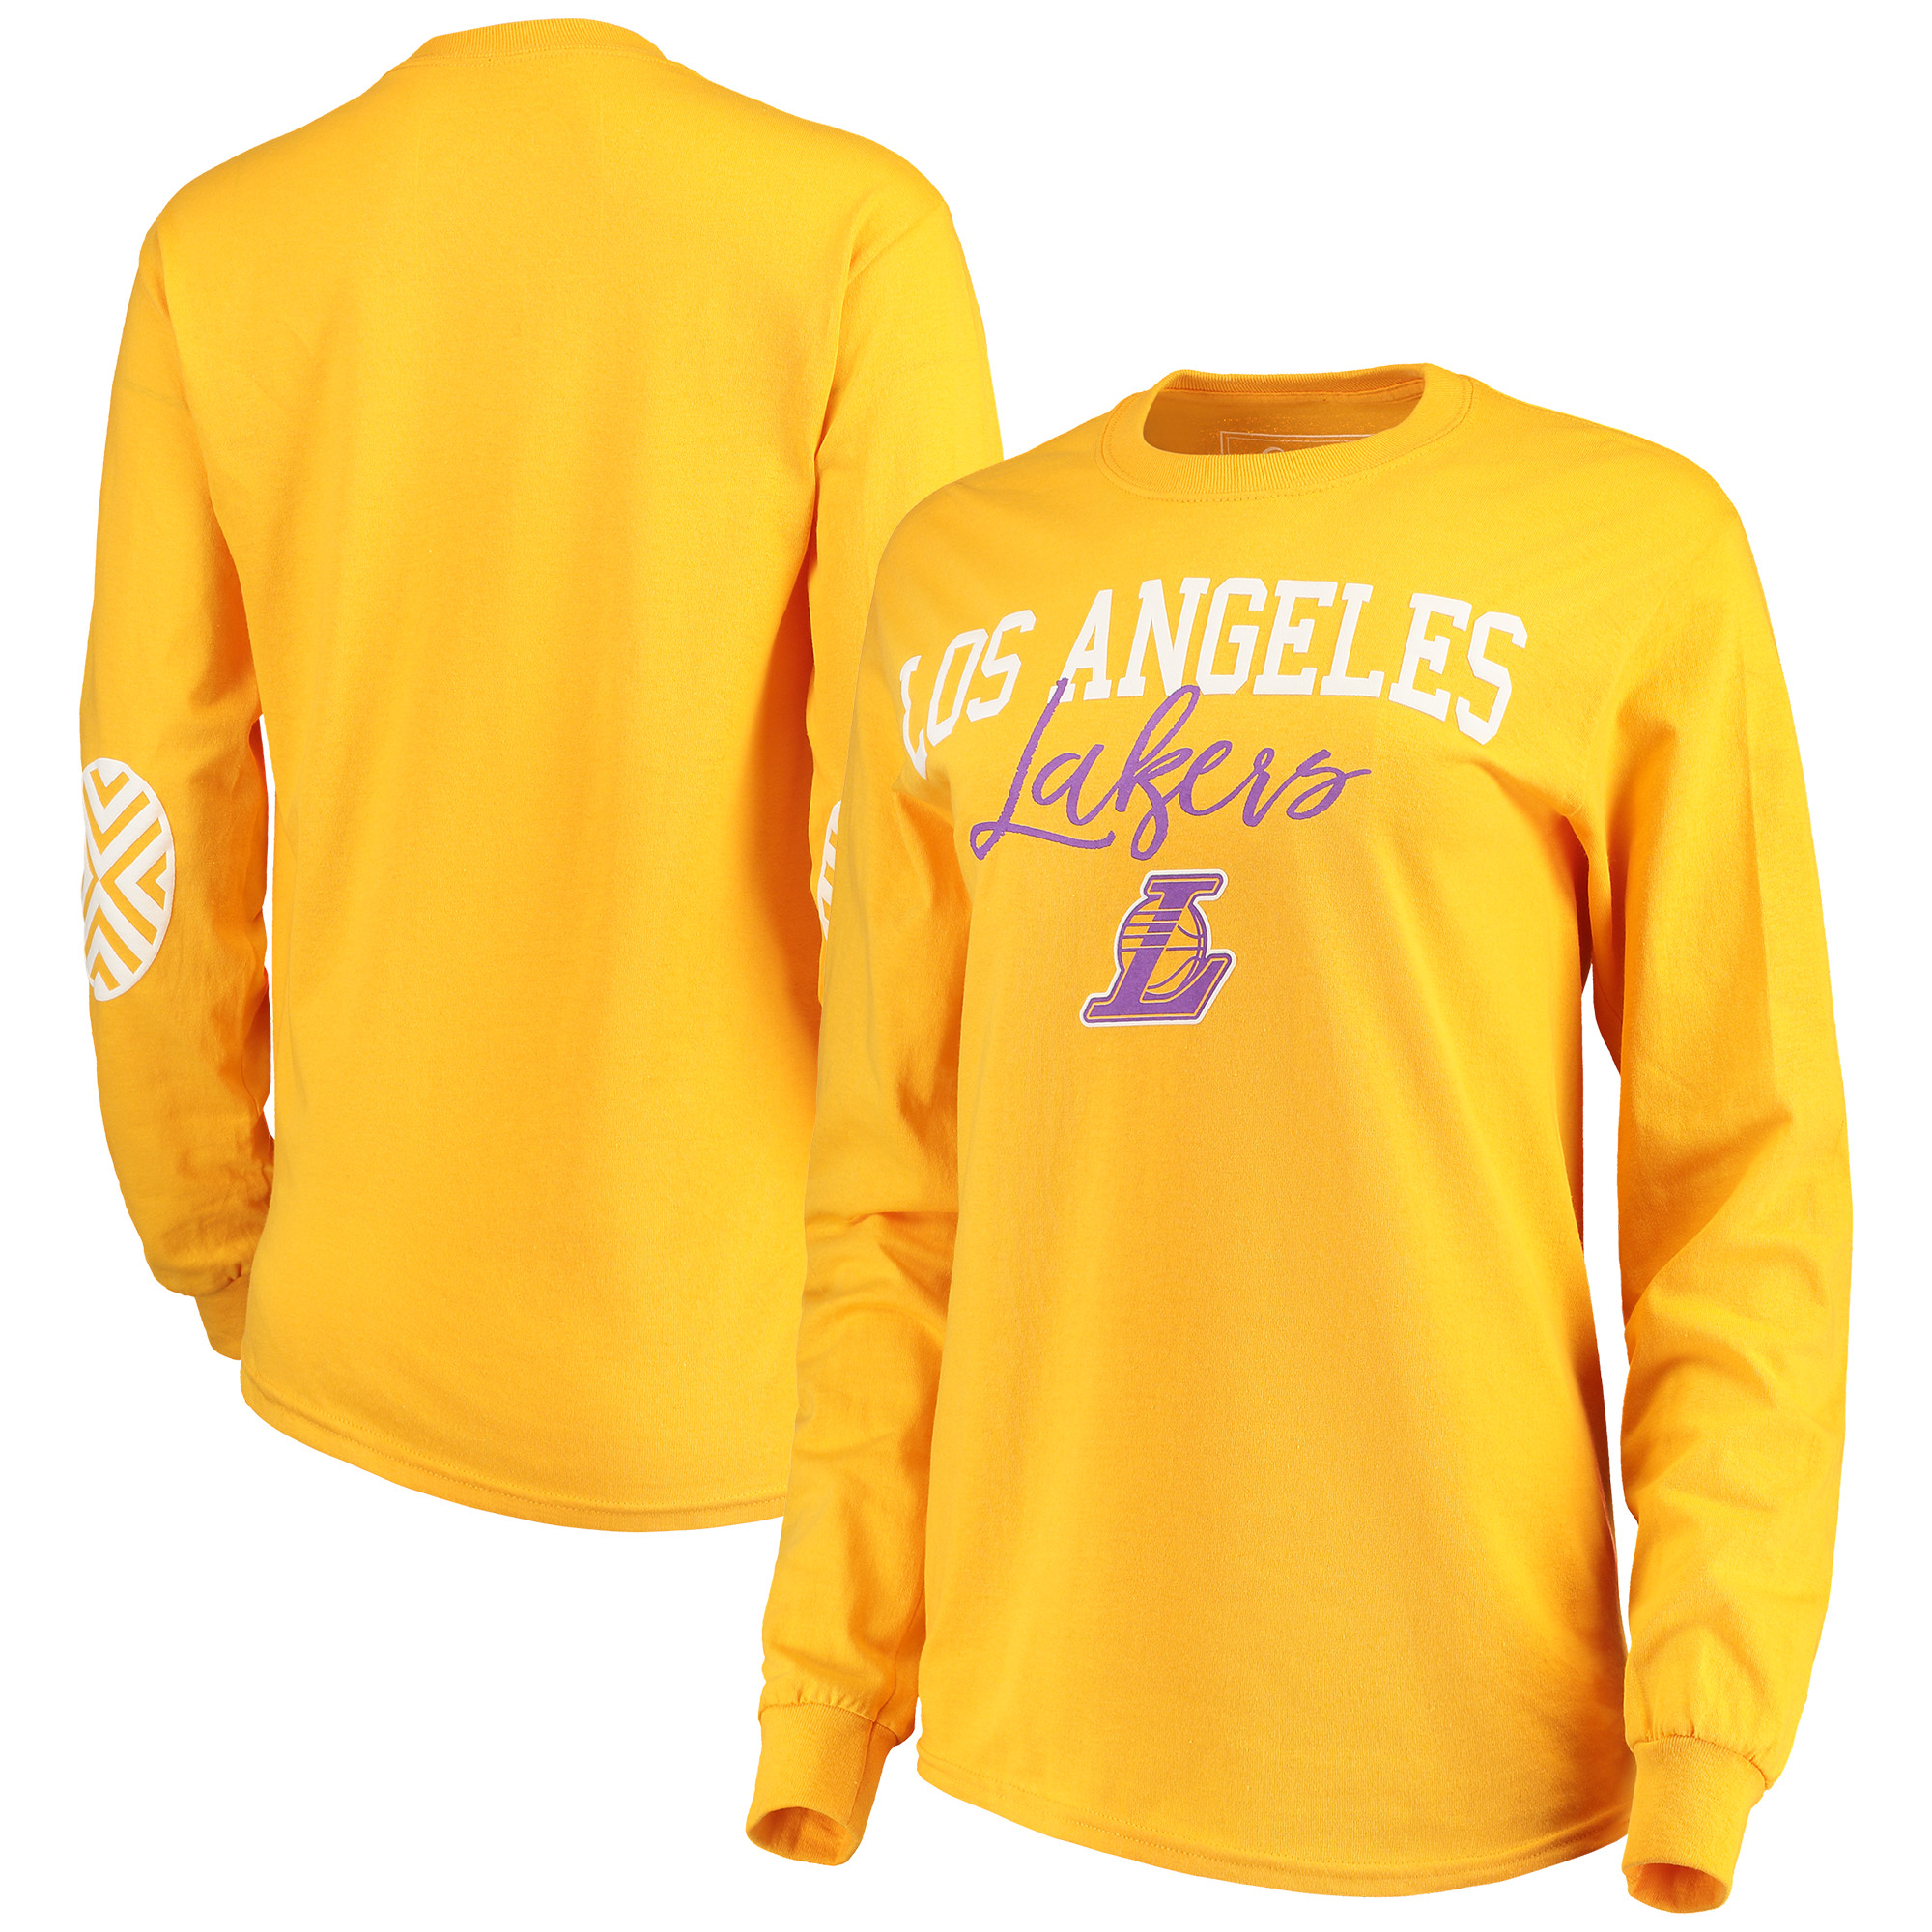 Los Angeles Lakers Women's Elbow Patch Long Sleeve T-Shirt - Gold